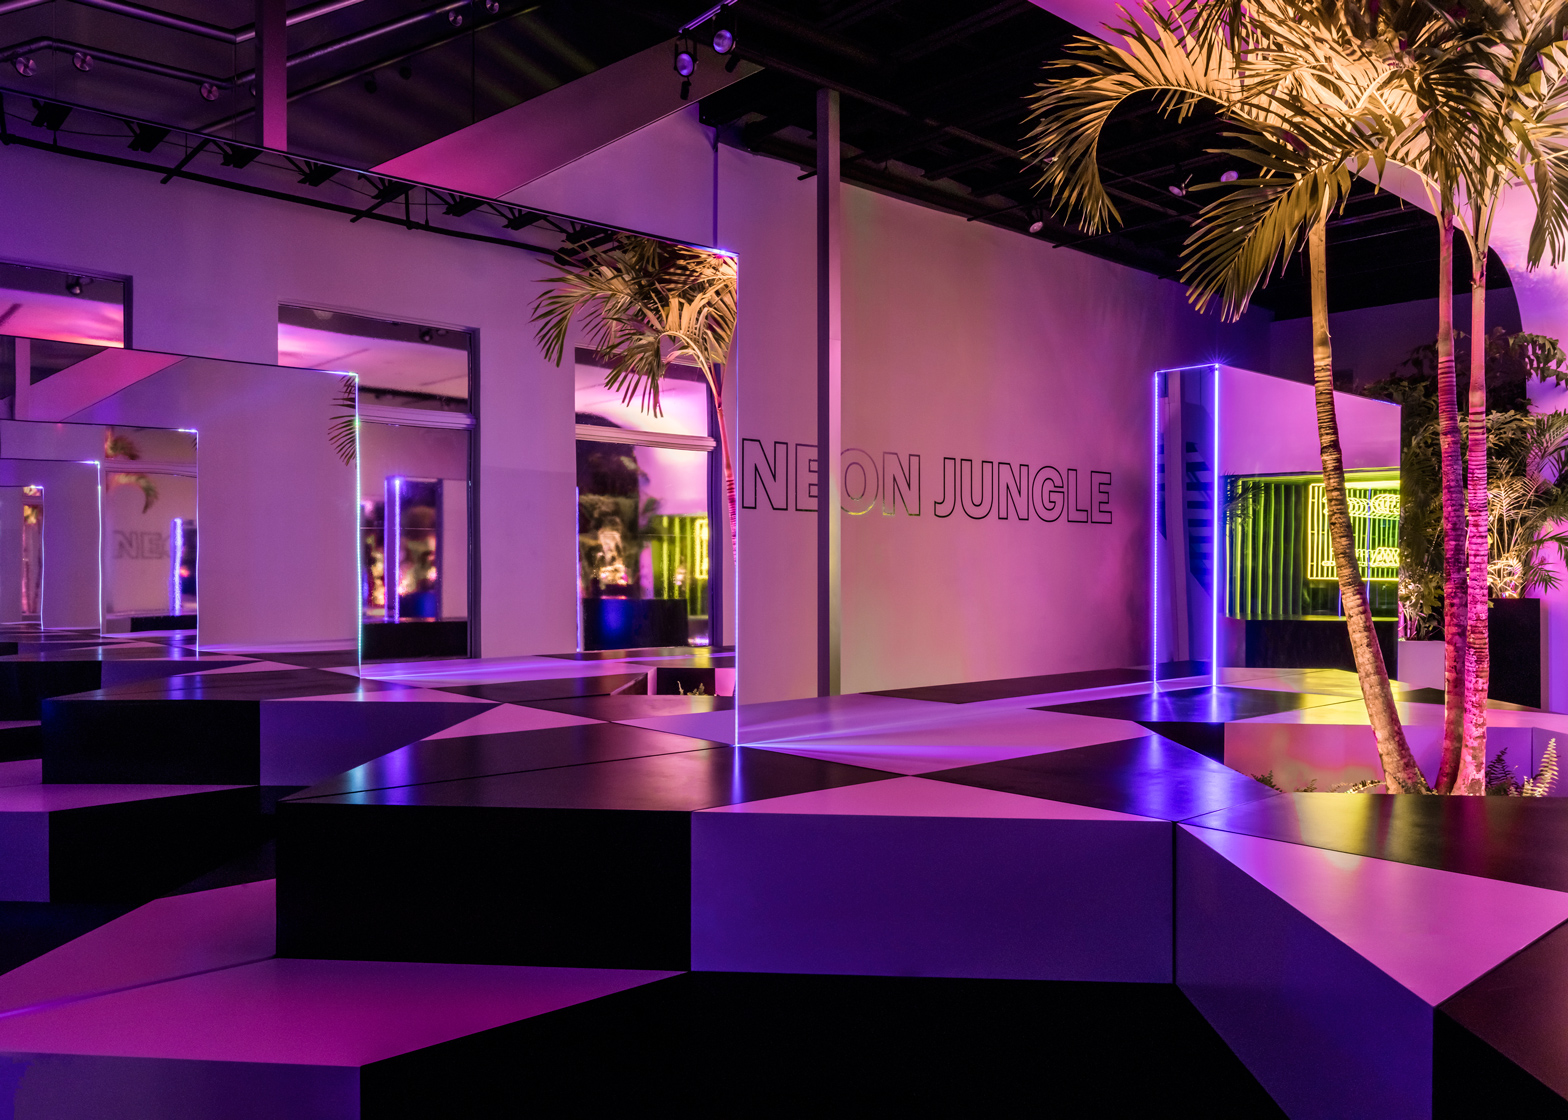 Neon Jungle installation by Rafael de Cardenas in Miami Design District